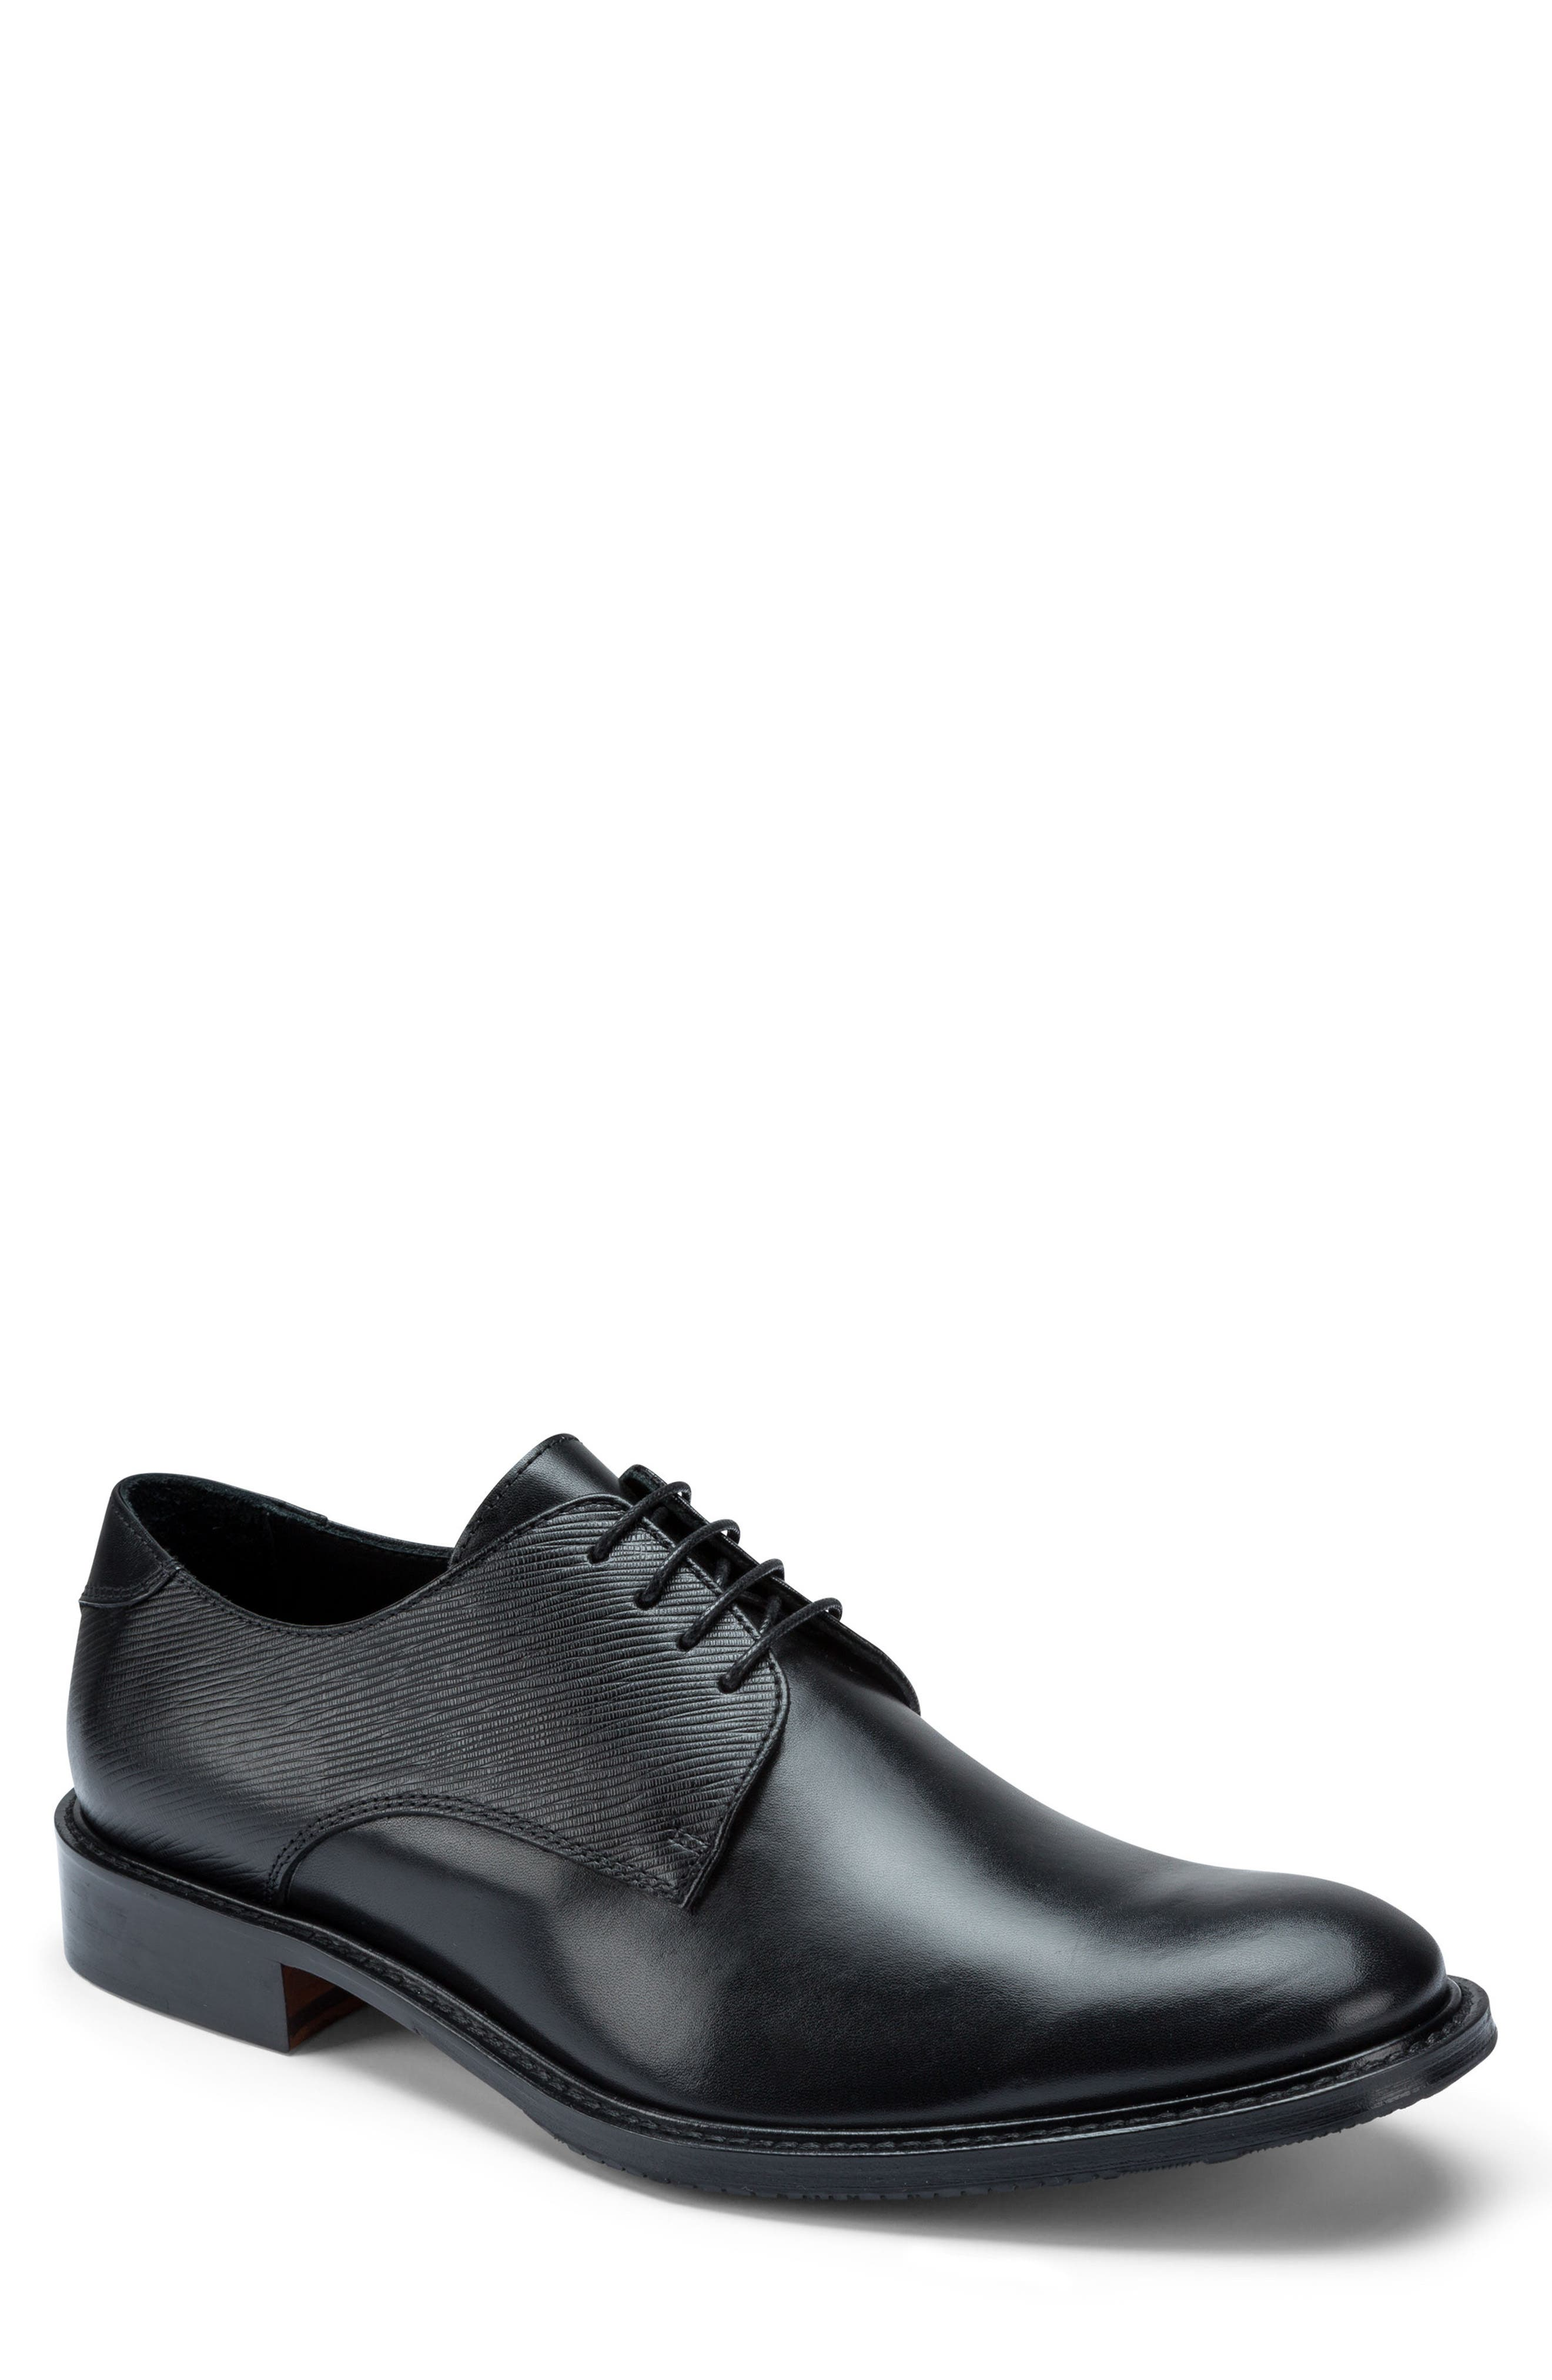 Sorrento Plain Toe Derby,                             Main thumbnail 1, color,                             Nero Leather